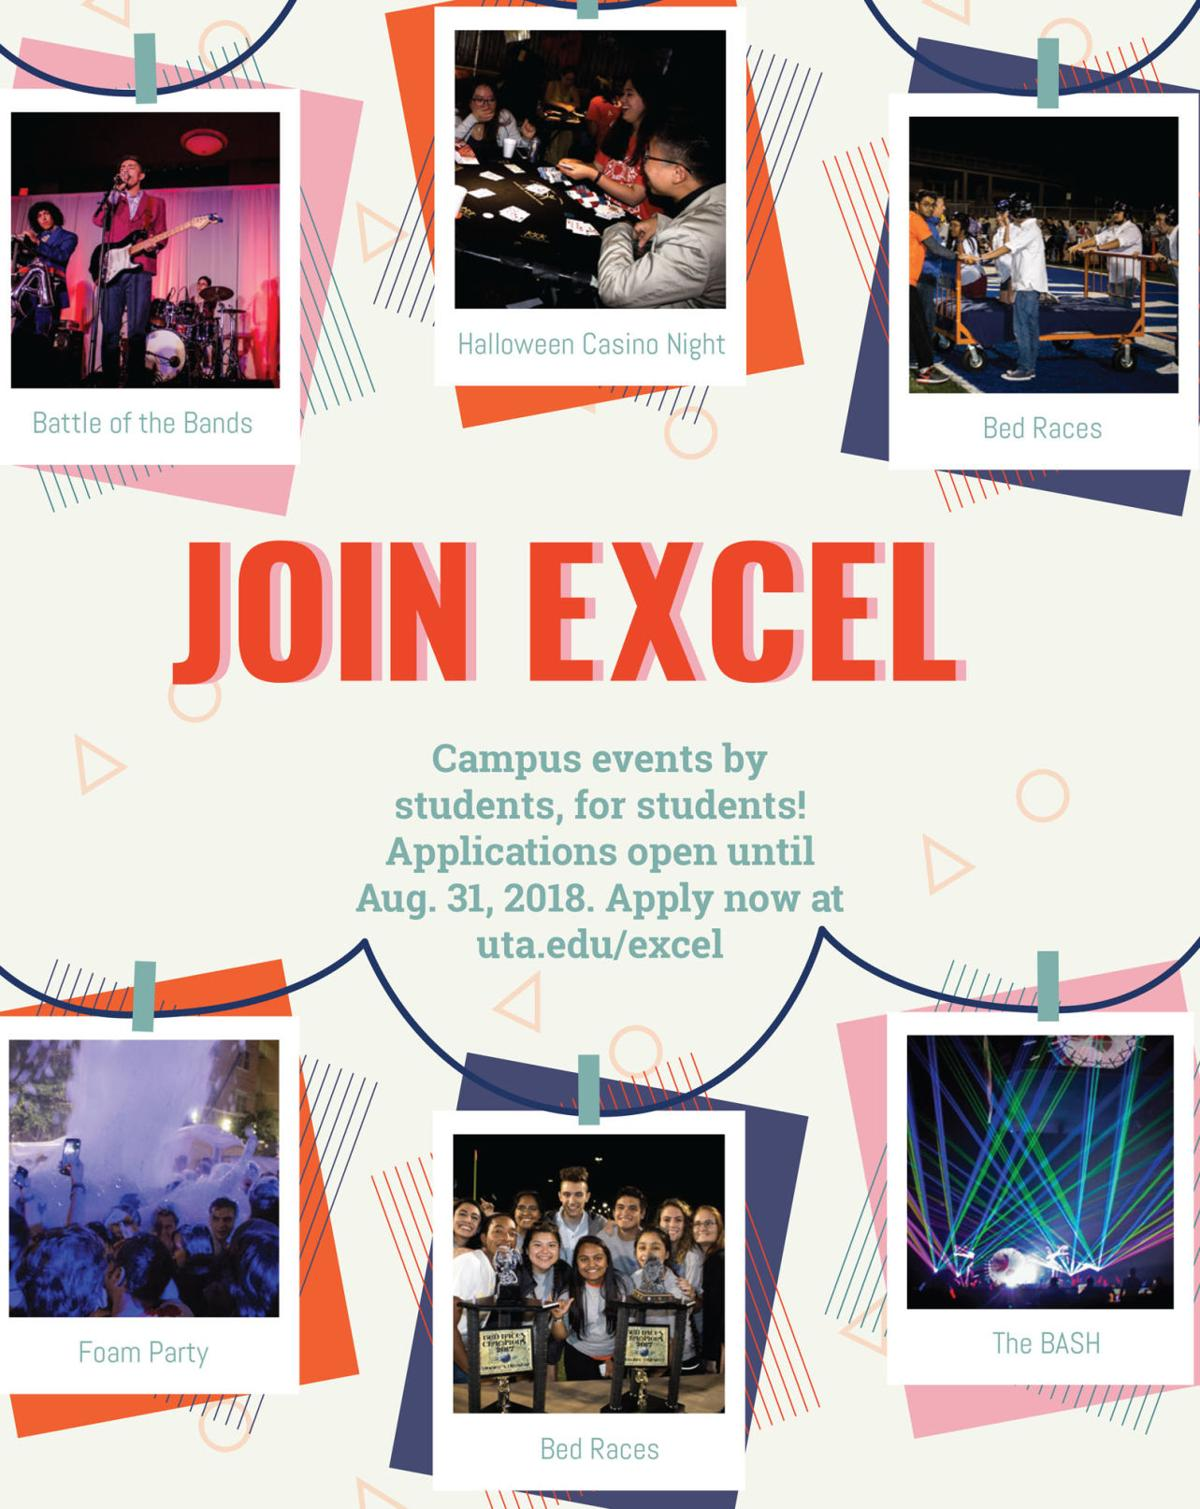 Join Excel